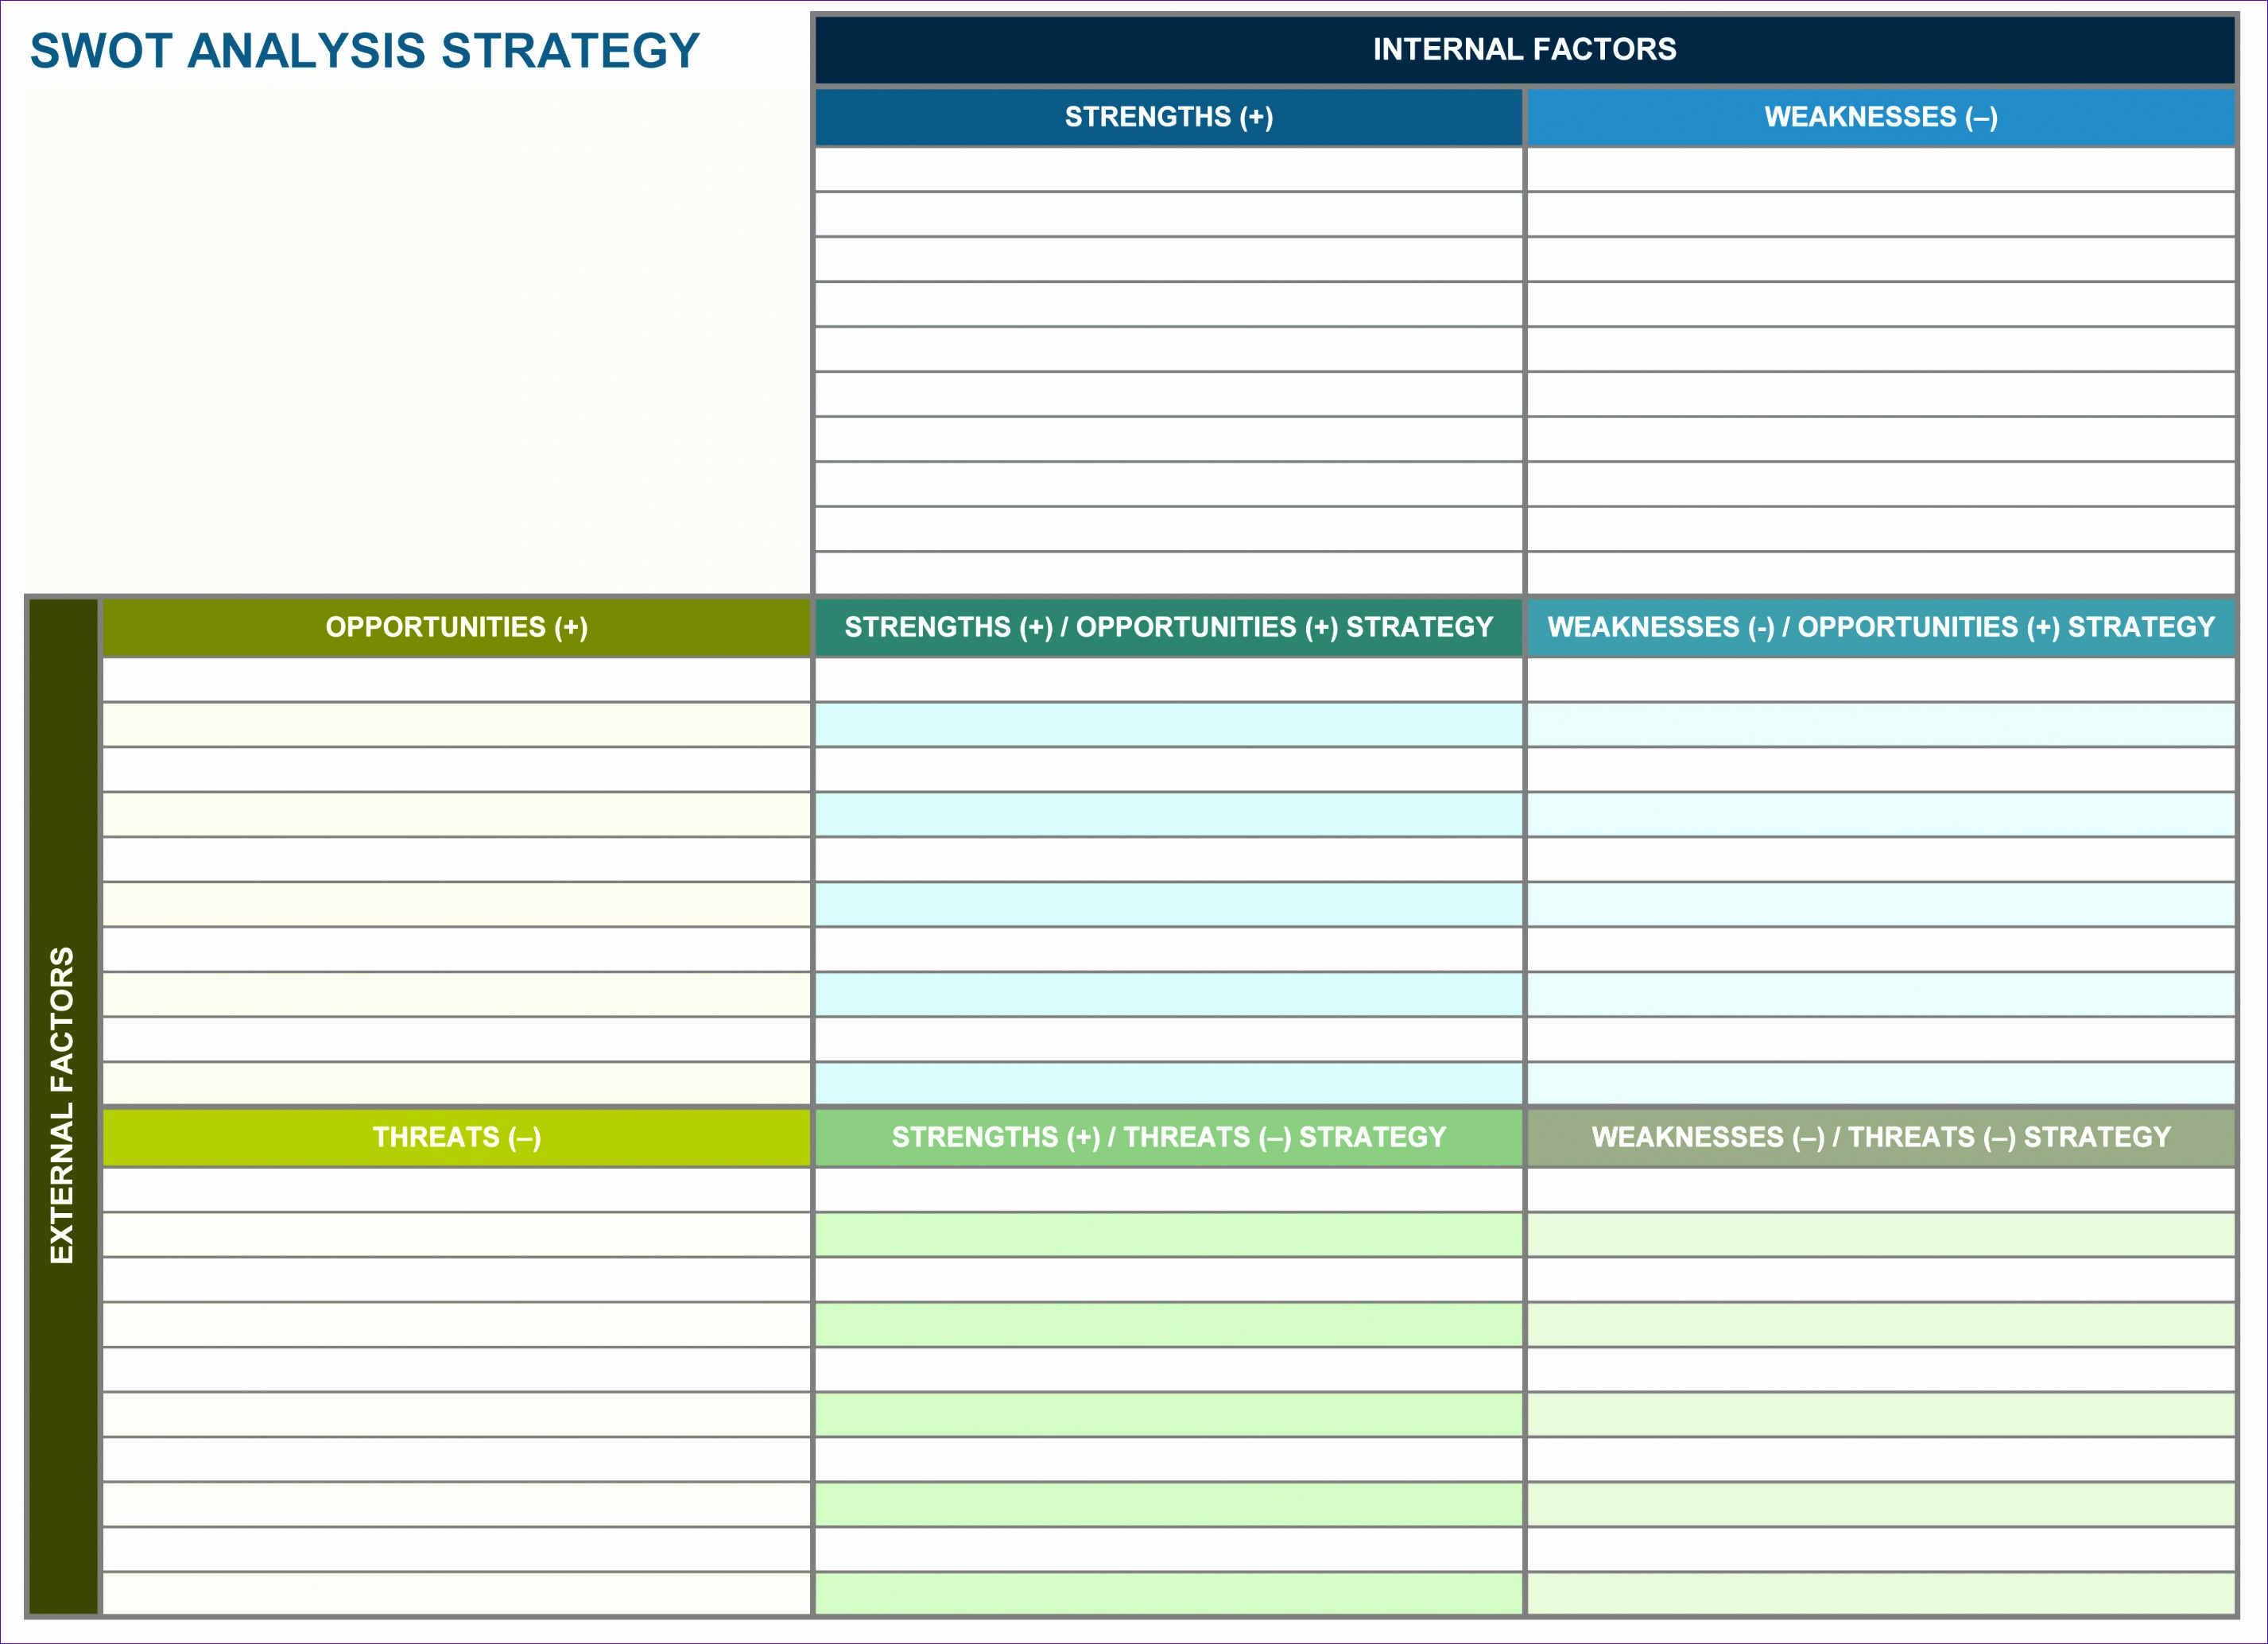 SWOT analysis strategy